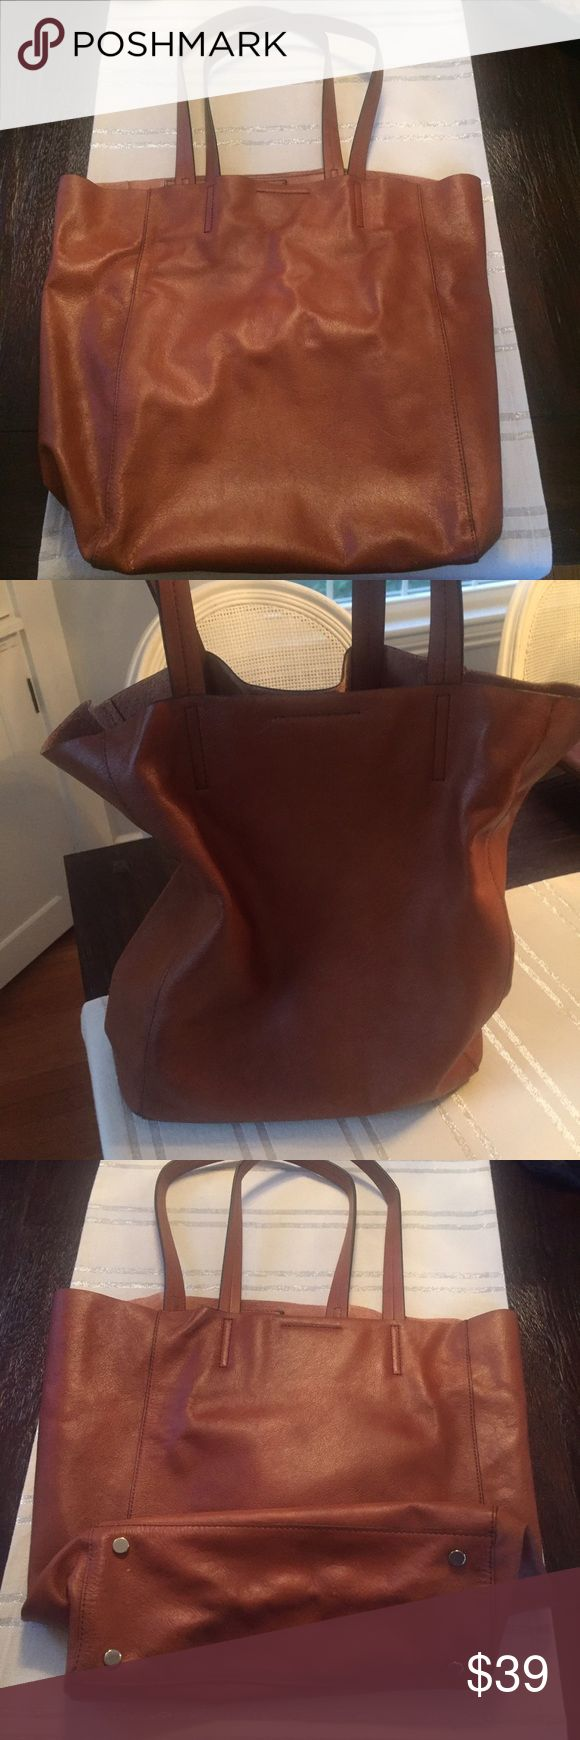 Banana Republic Leather Tote (computer bag) Banana Republic Brown / Luggage Brown Tote bag, that can be used as at computer bag. Buttery leather, with inside pouch pocket. Used once, no sign of wear, perfect condition. Banana Republic Bags Totes